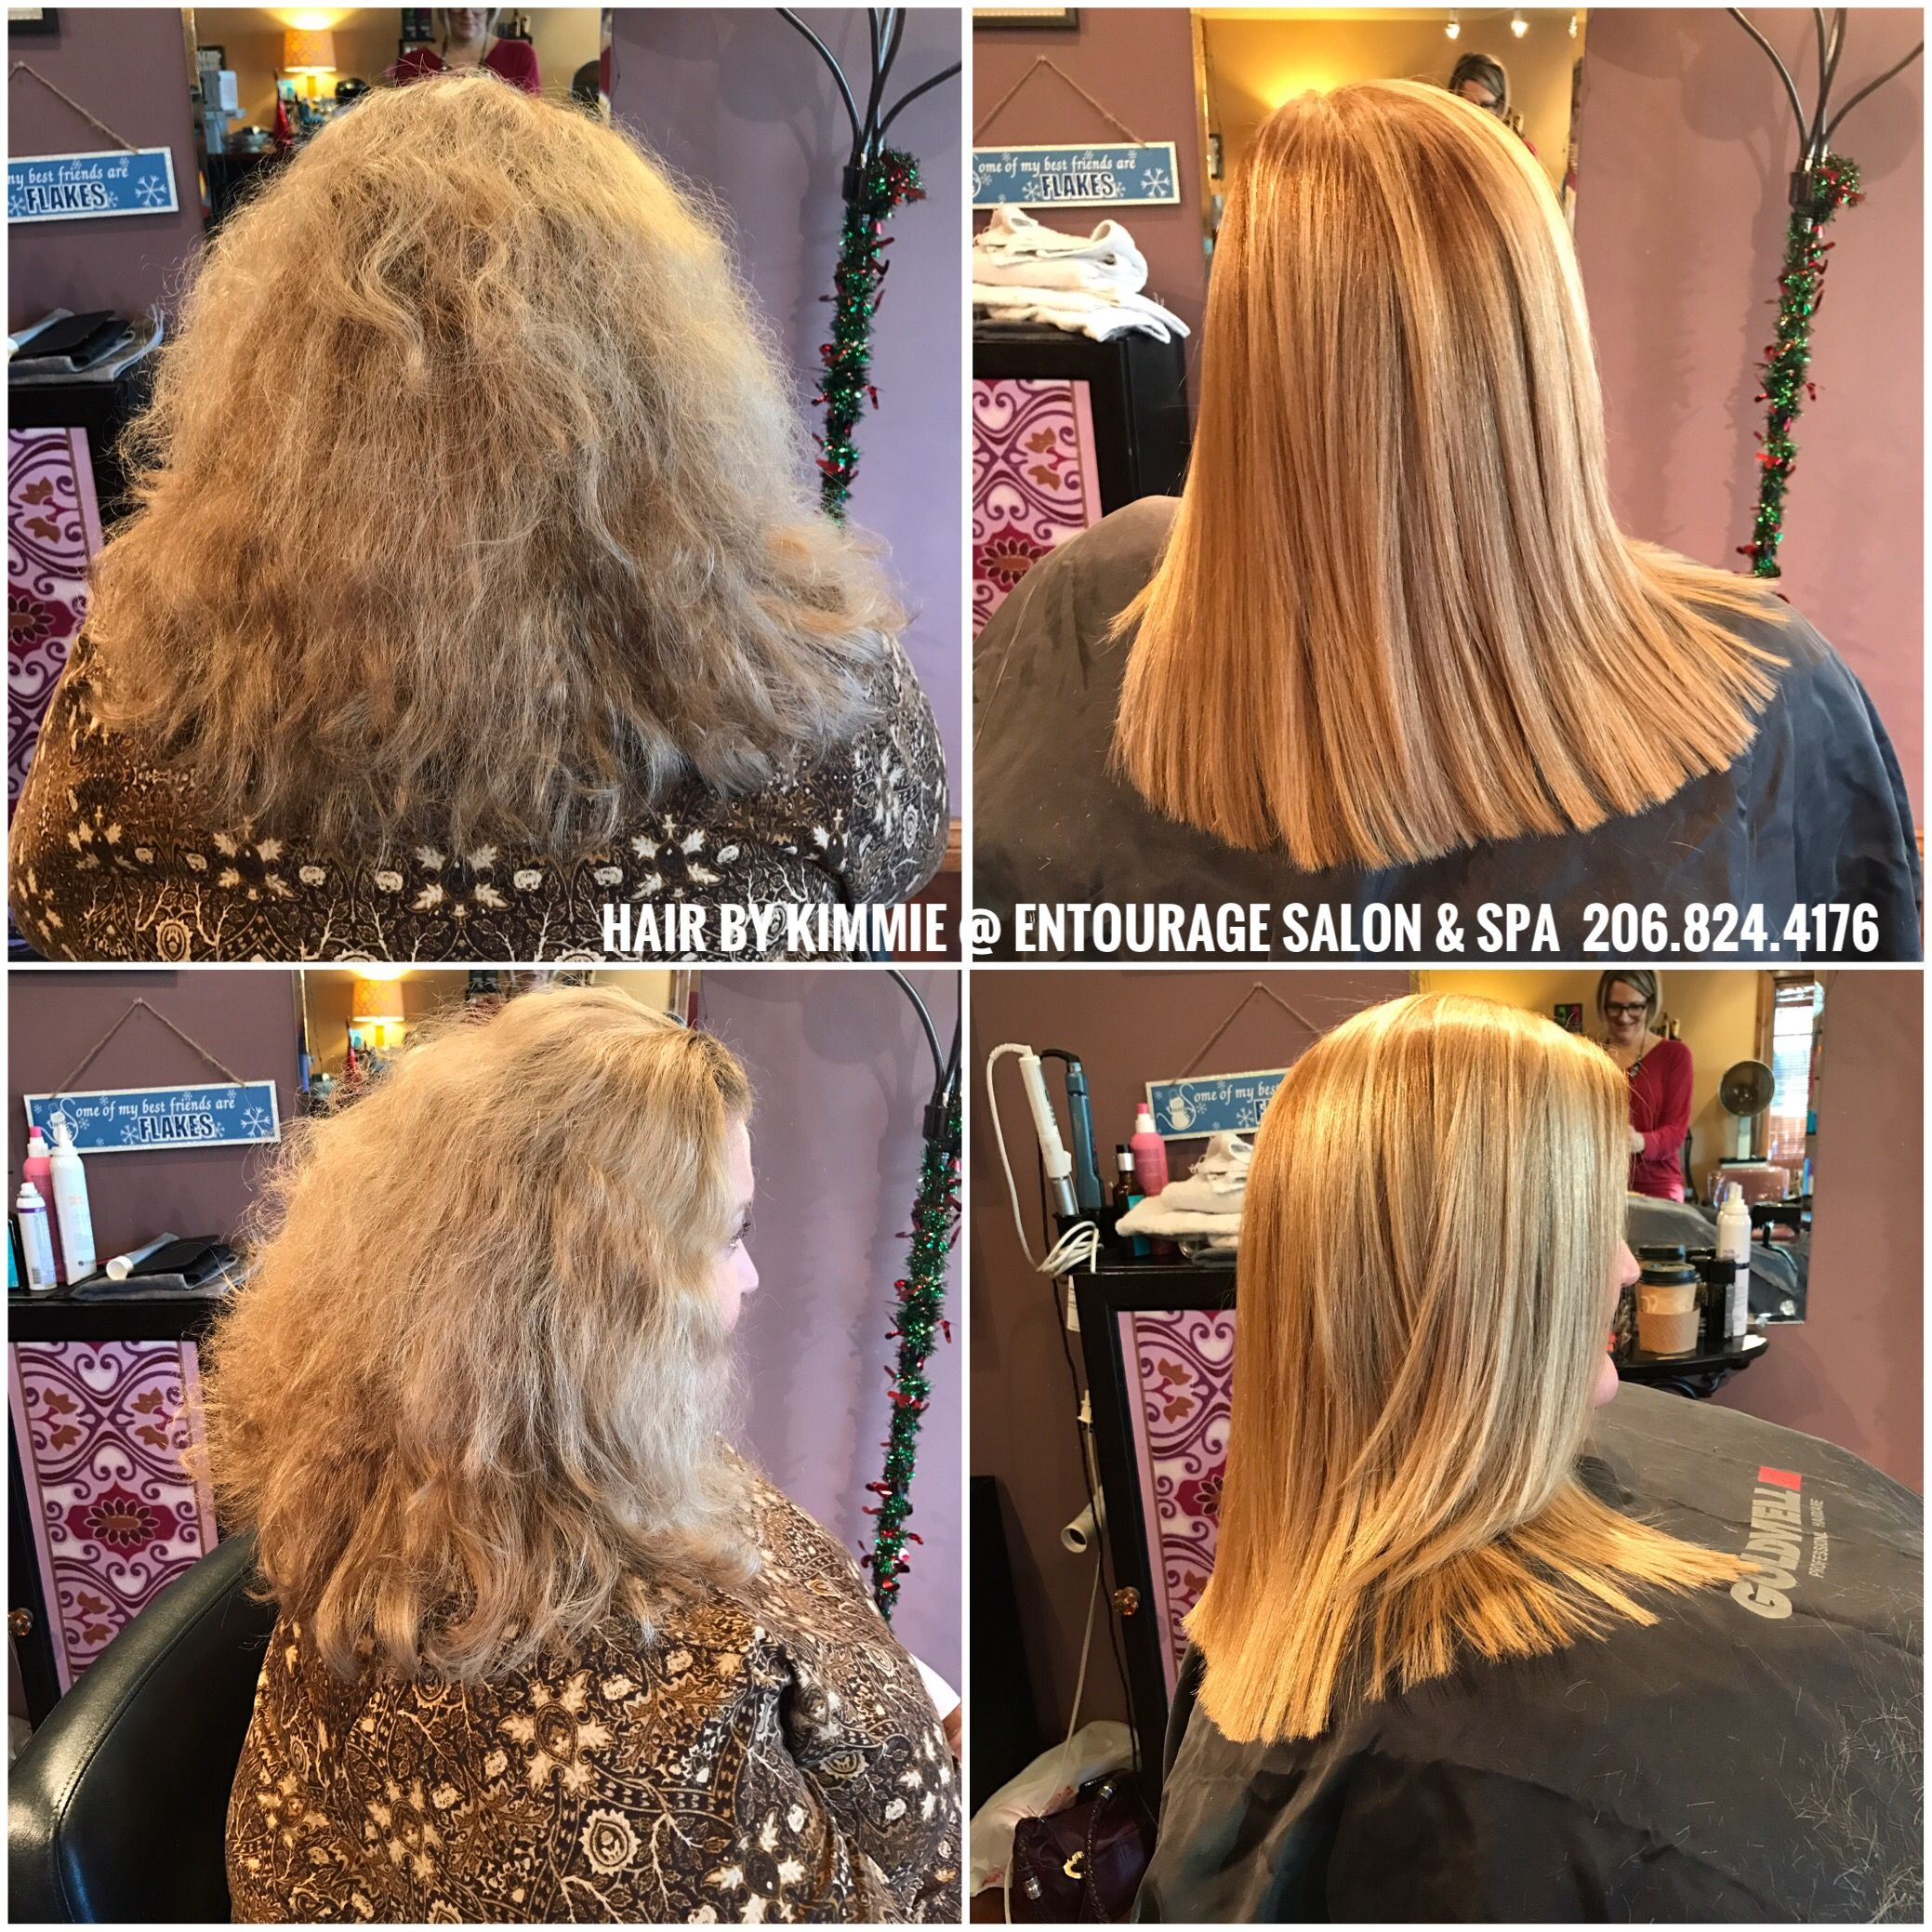 Brazilian Blowout by Kimmie Moore Entourage Salon and Spa